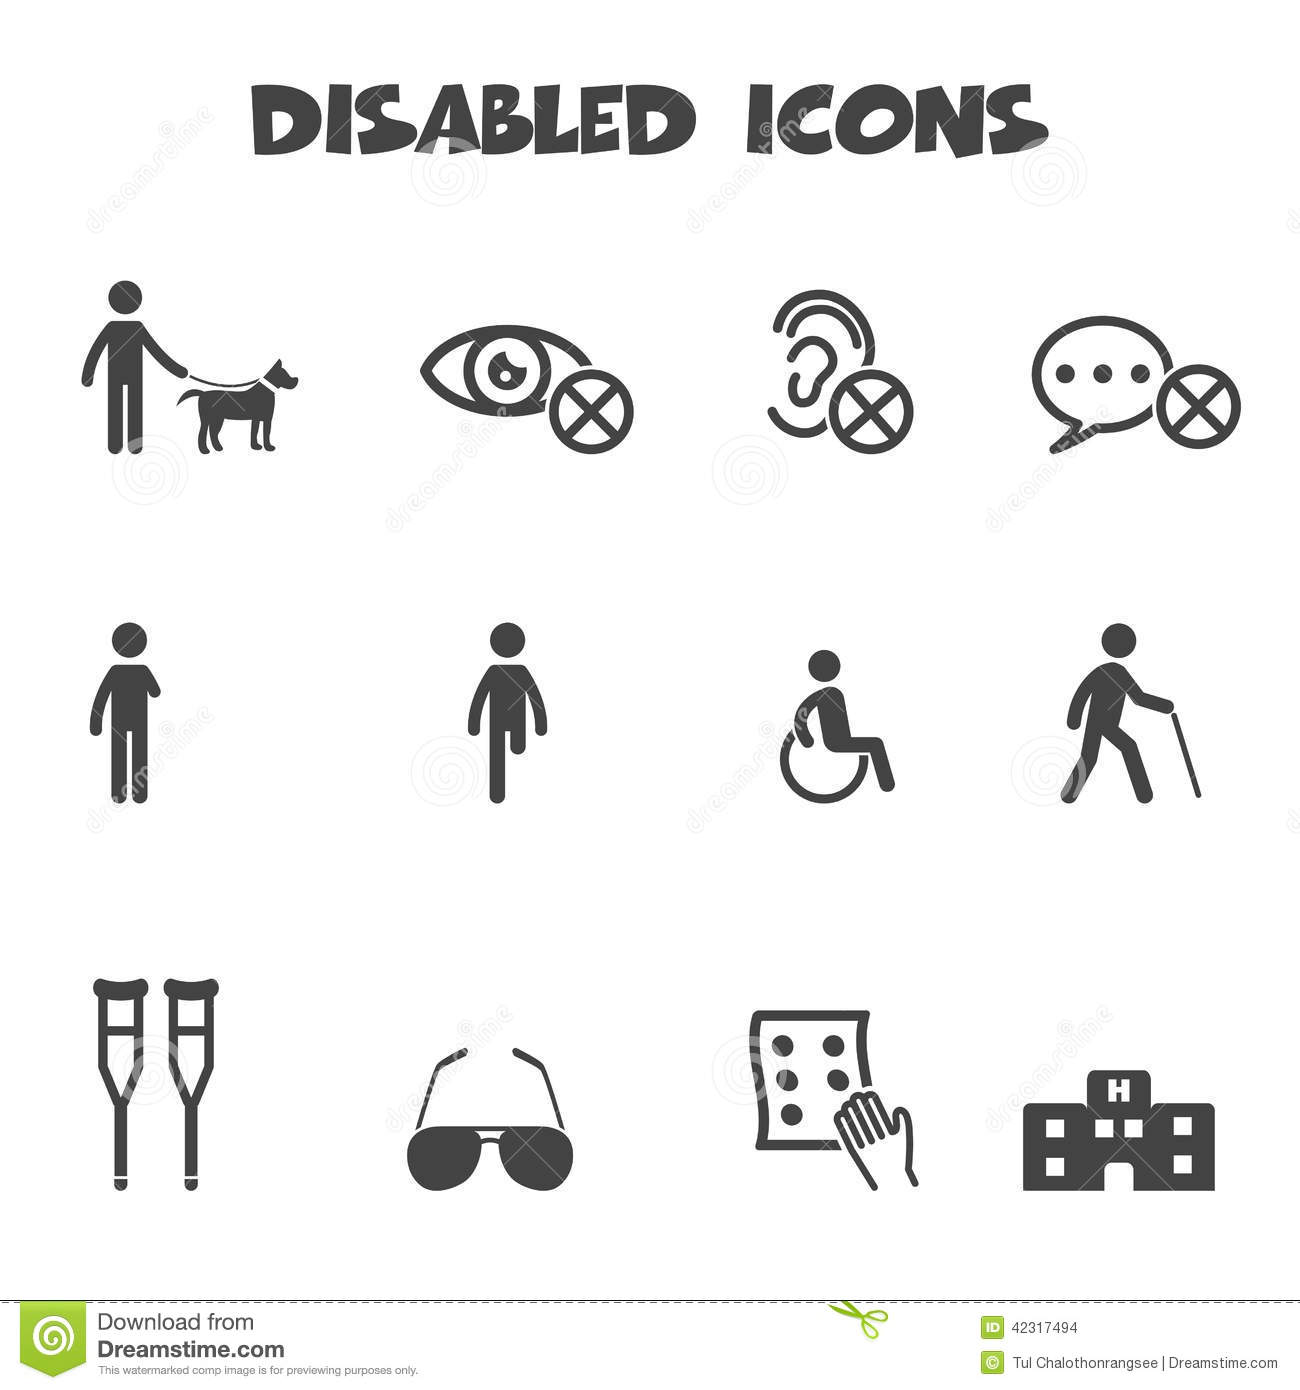 Disabled icons stock vector. Illustration of accessible